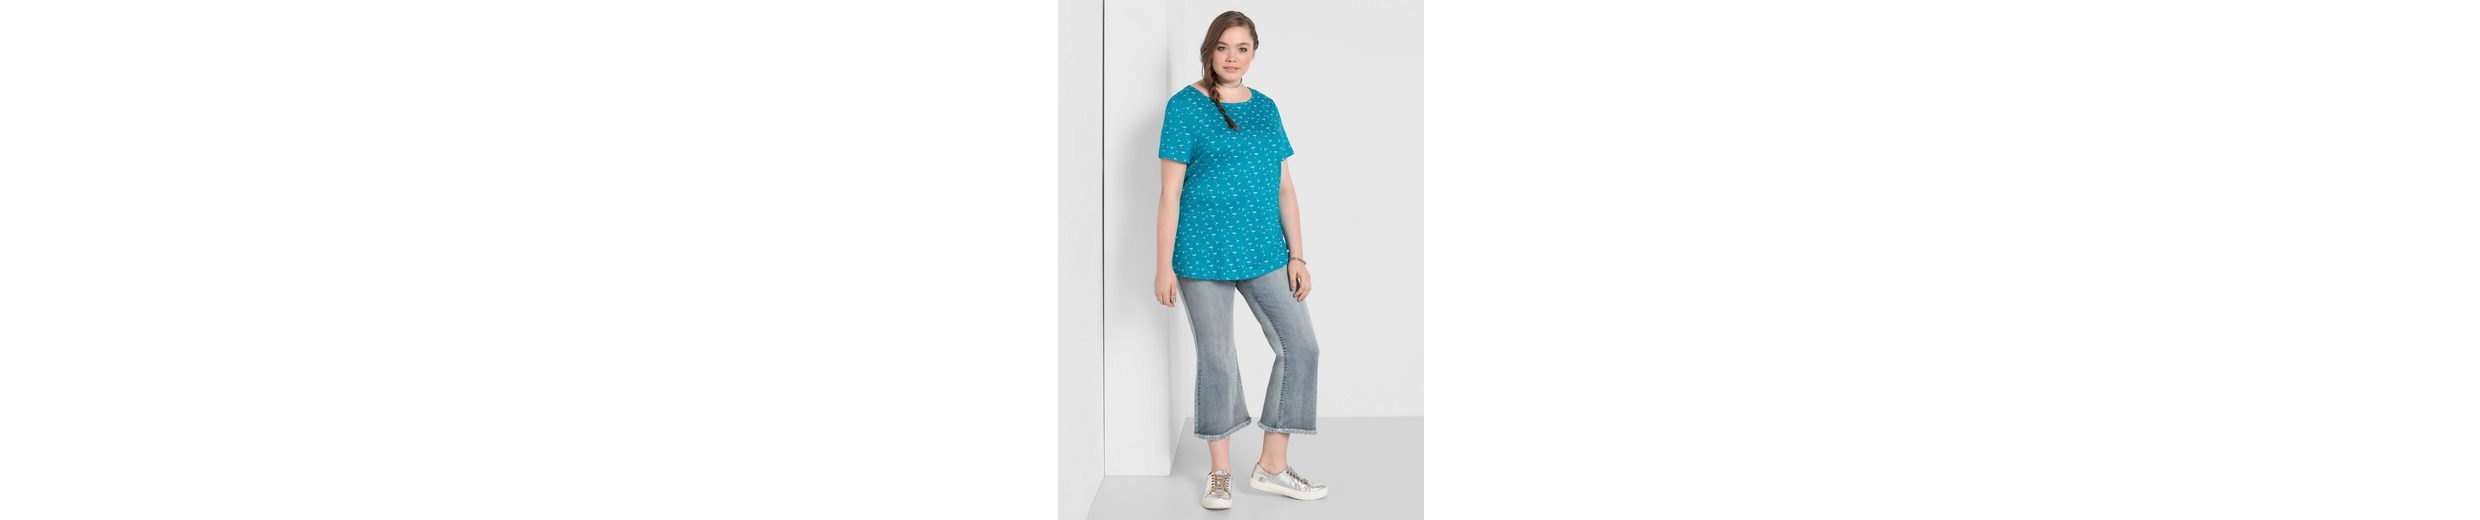 sheego T Casual T Casual Shirt sheego Casual Shirt T sheego RPYTw